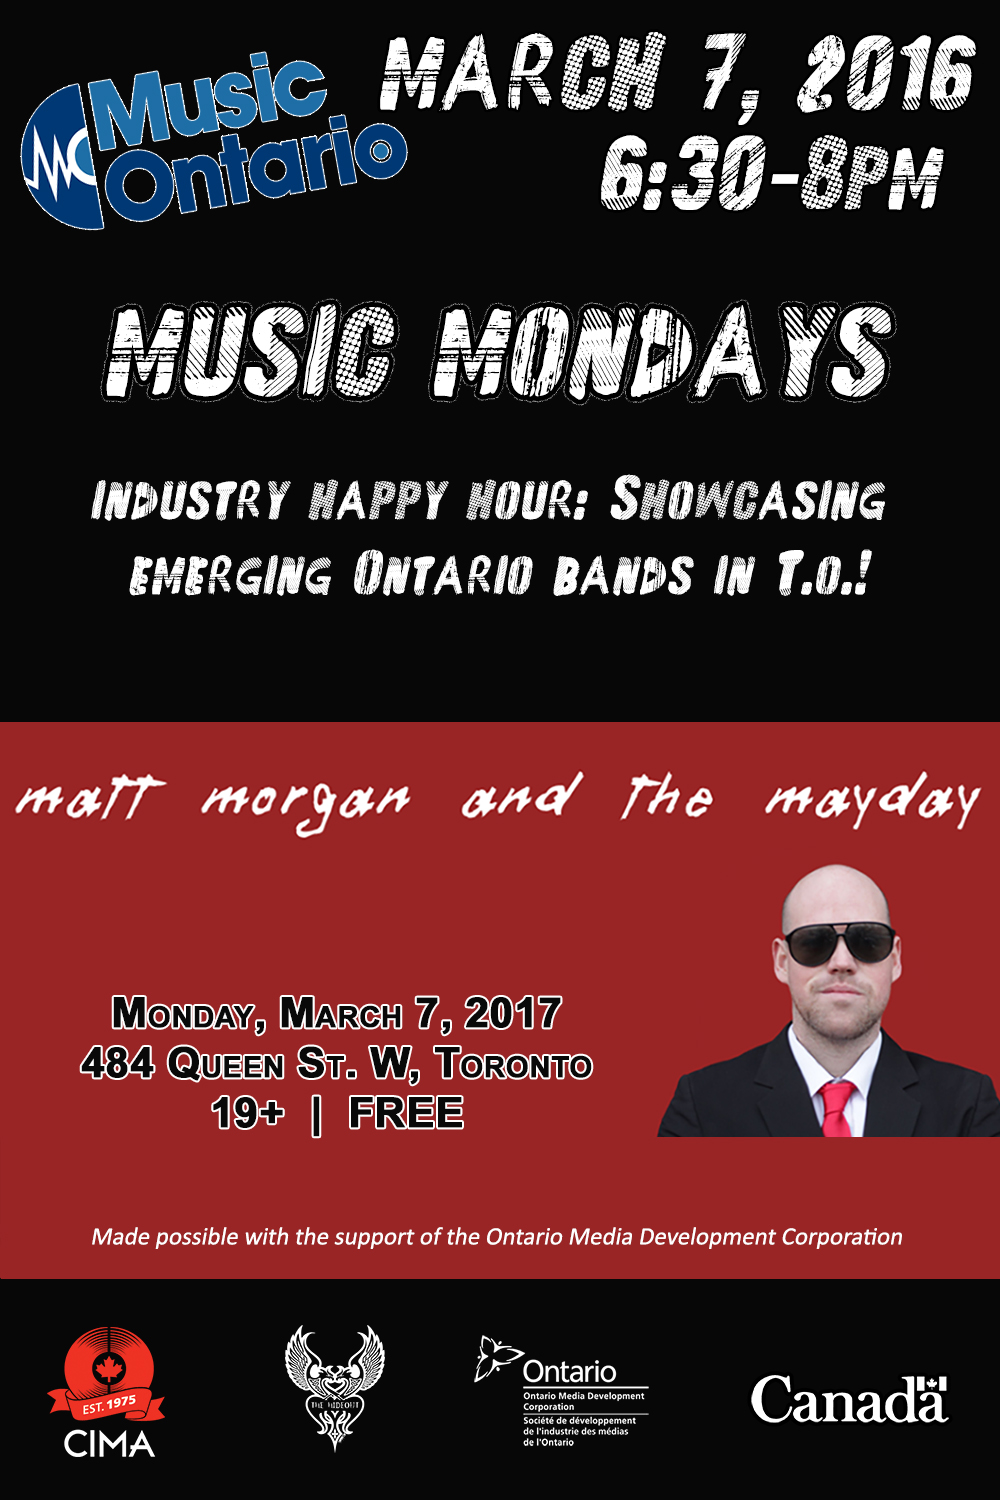 Music Mondays March 7, 2016 Poster no rsvp